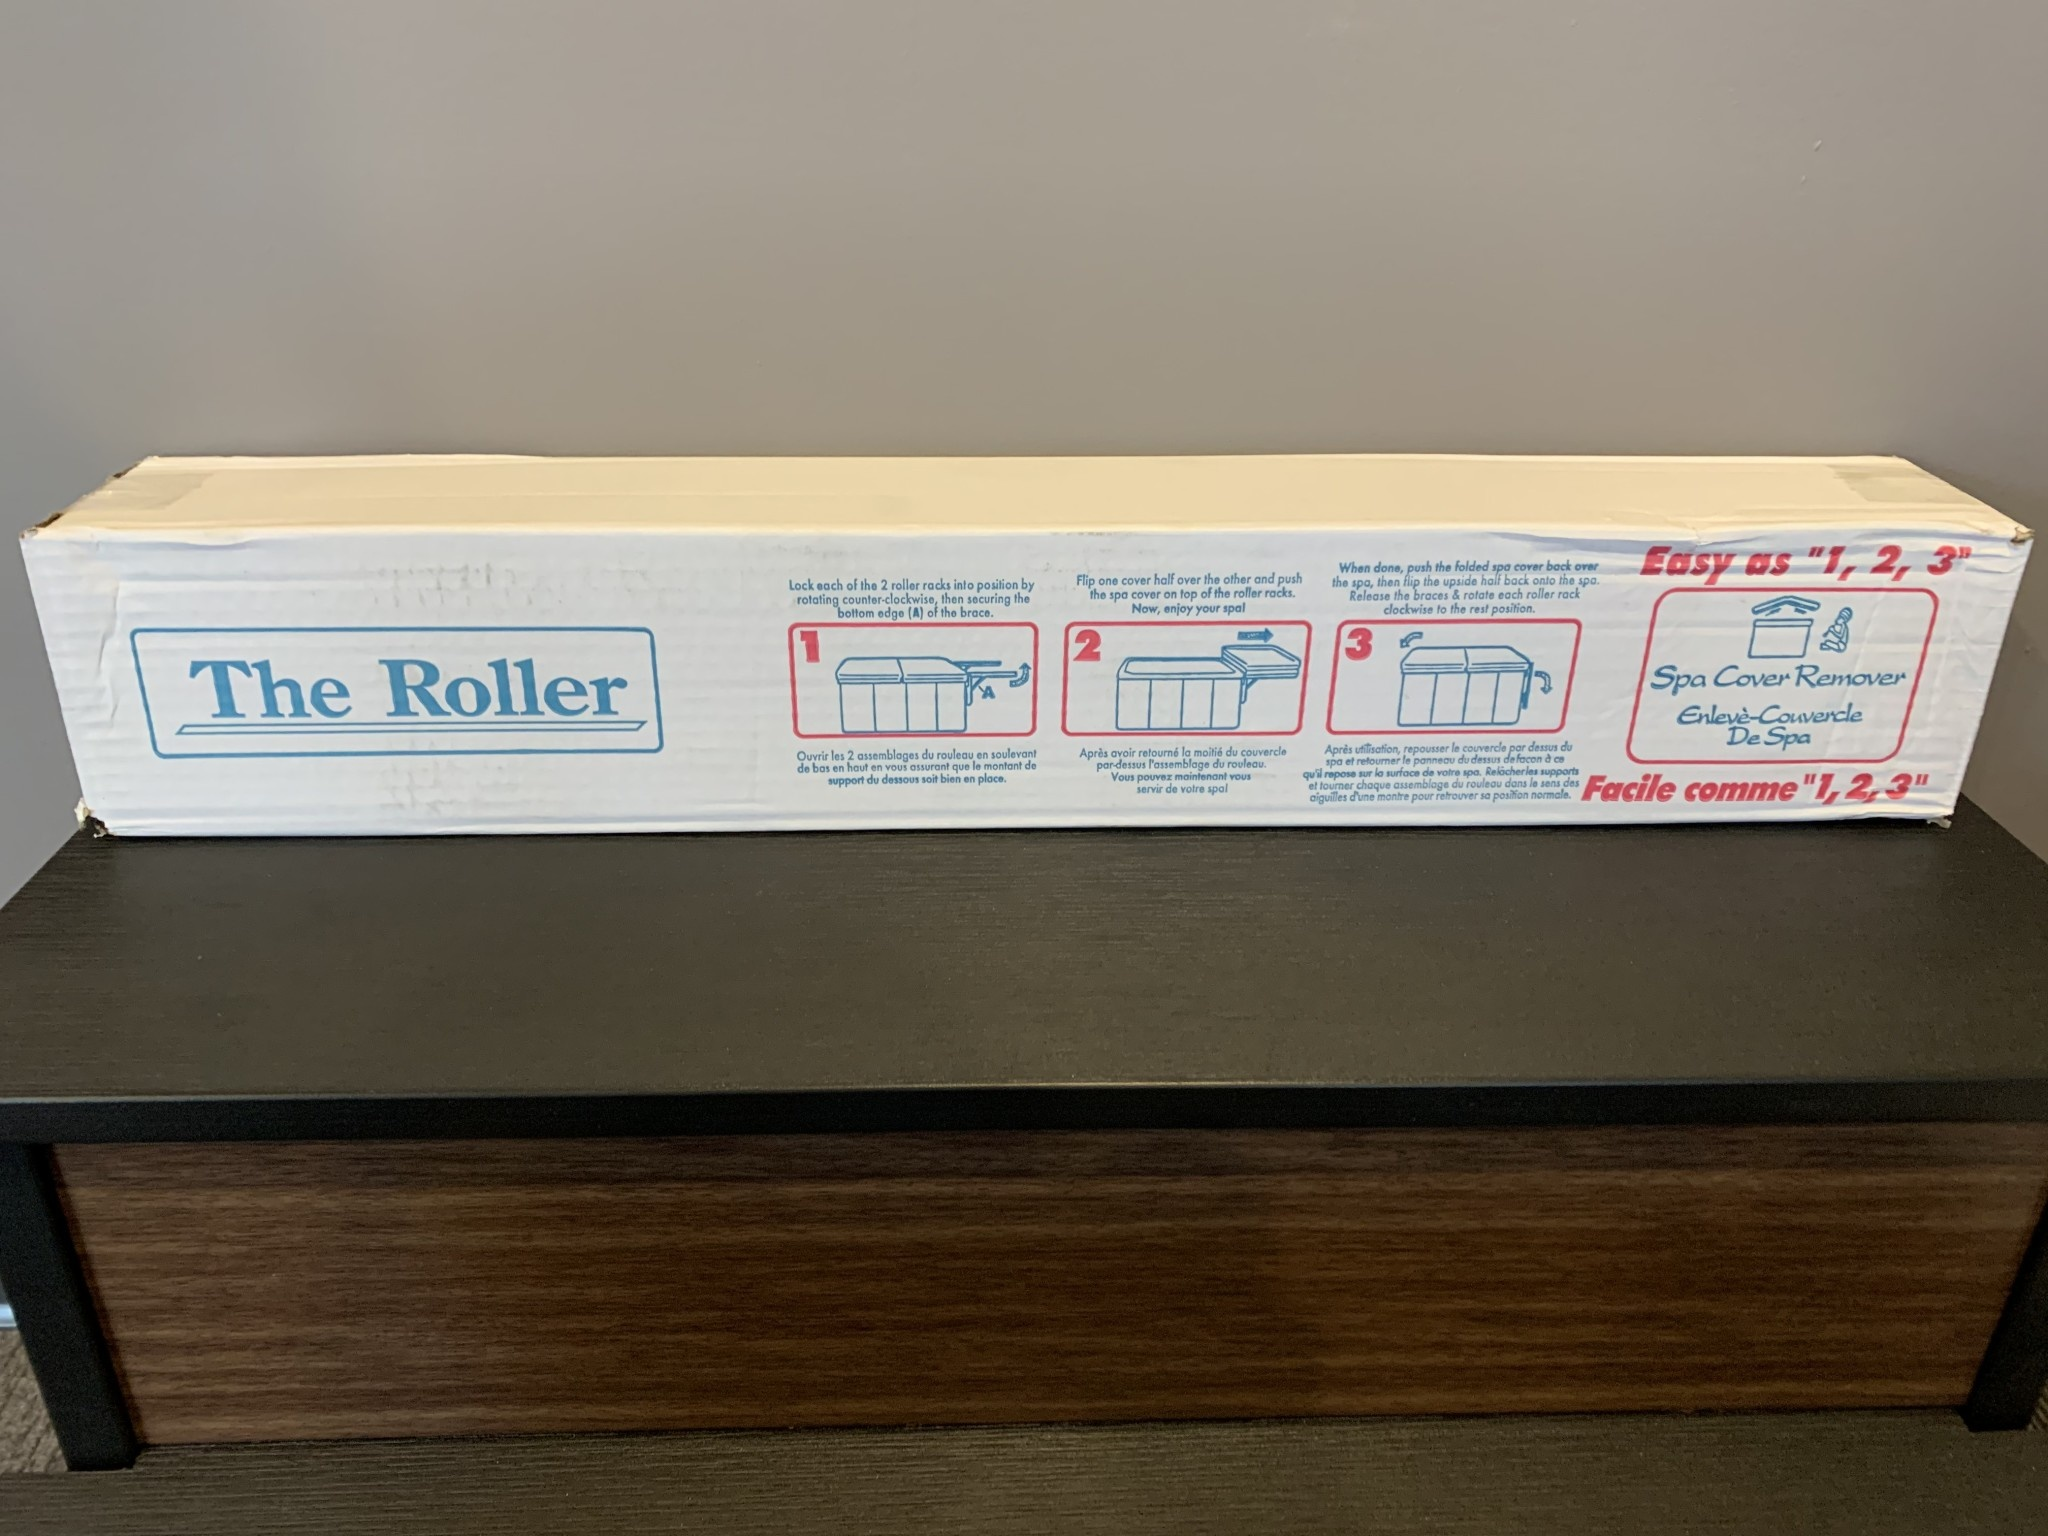 Roller Spa Cover Remover